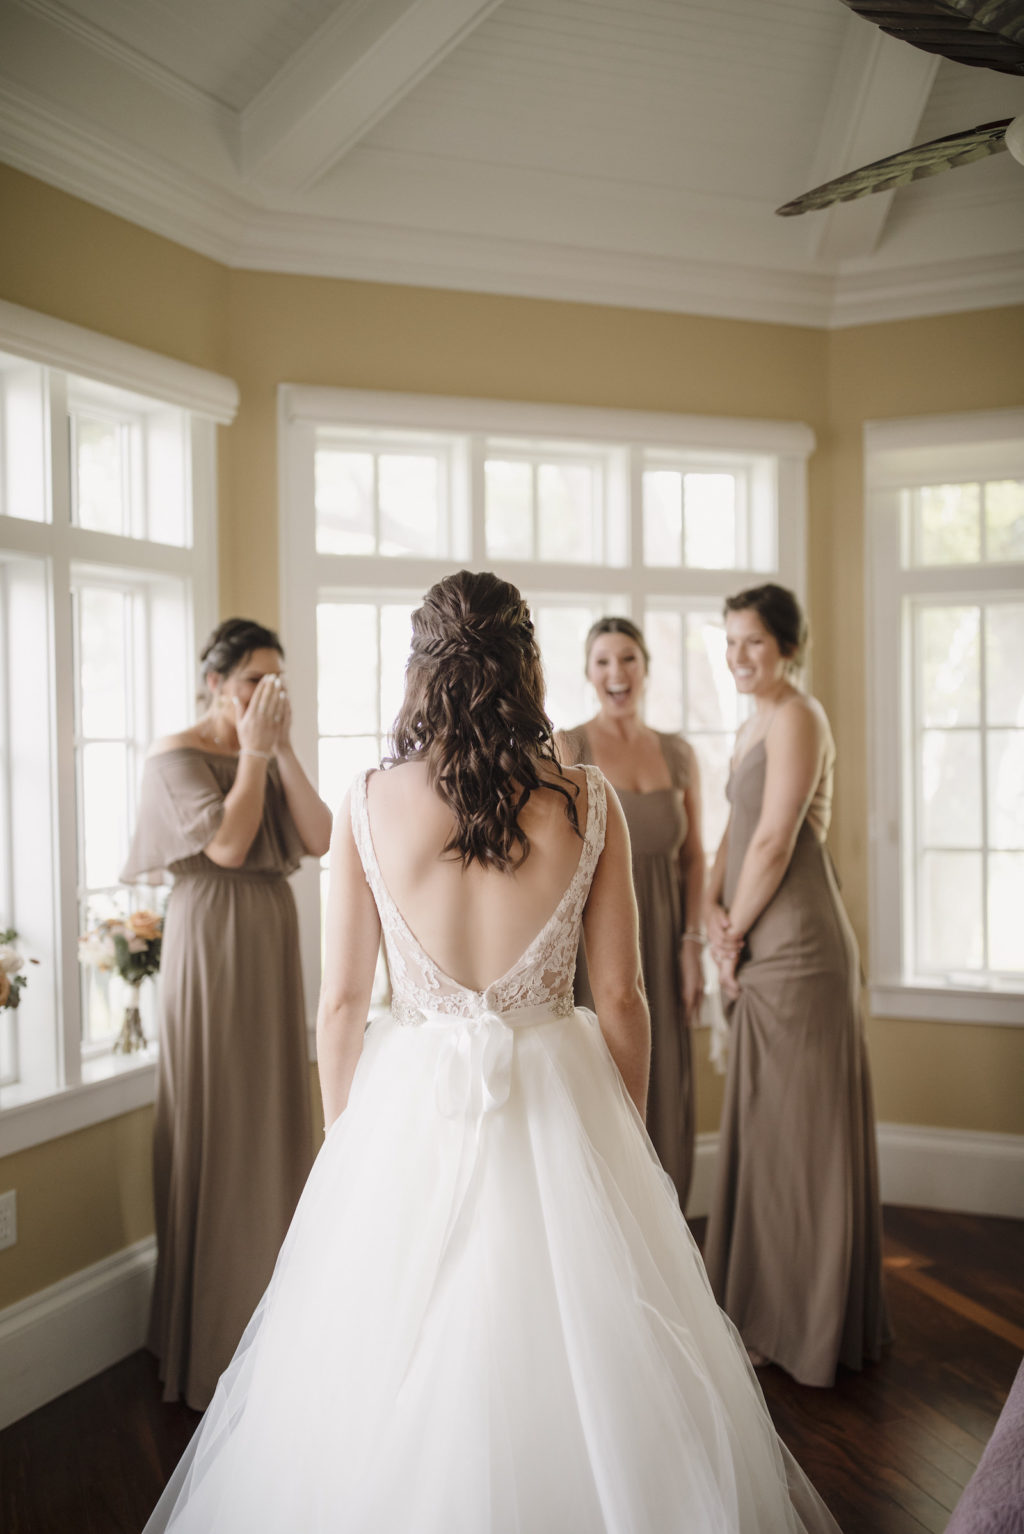 Bride in Low Back Lace Detail Ballgown Wedding Dress   Florida Bride in her Dress First Look with Bridesmaids   Bridesmaids in Mix and Match Taupe Bridesmaid Dresses Portrait   Paloma Blanca, Overskirt: Hayley Paige Ballgown   Bridesmaids in Show Me Your MuMu